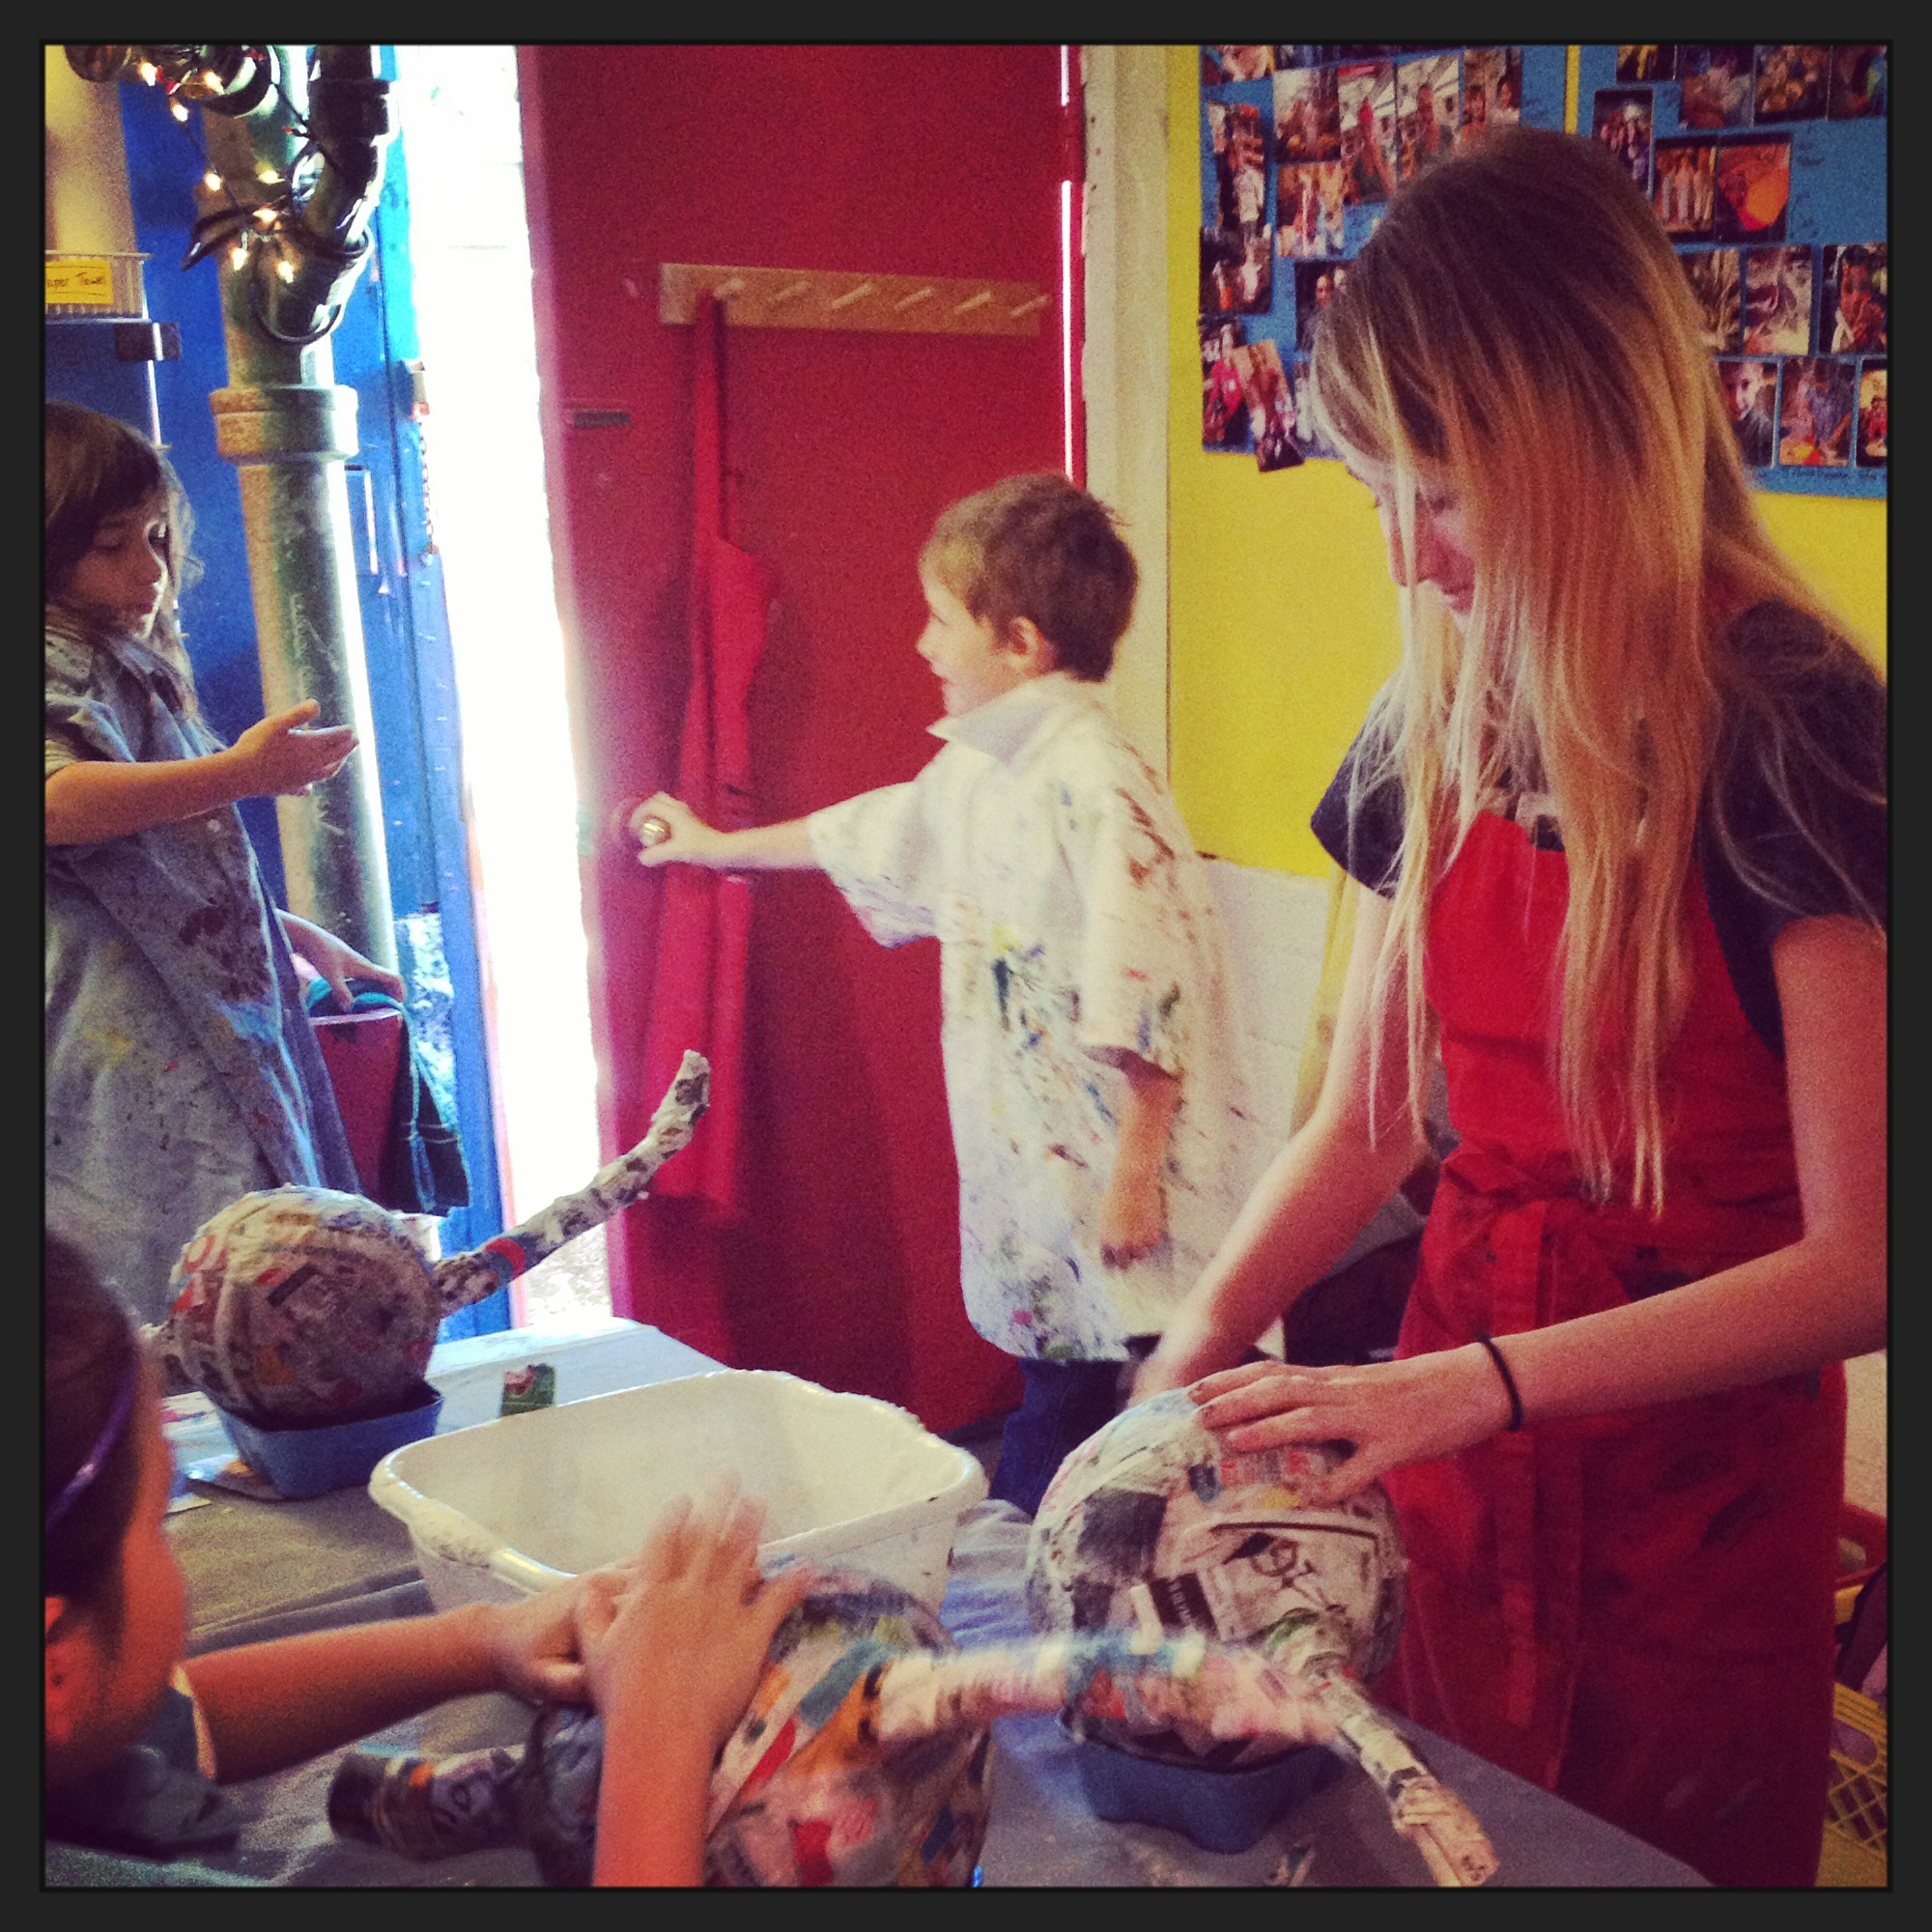 Shayden doing the final touches on a tired artist's paper maché dragon at a camp.